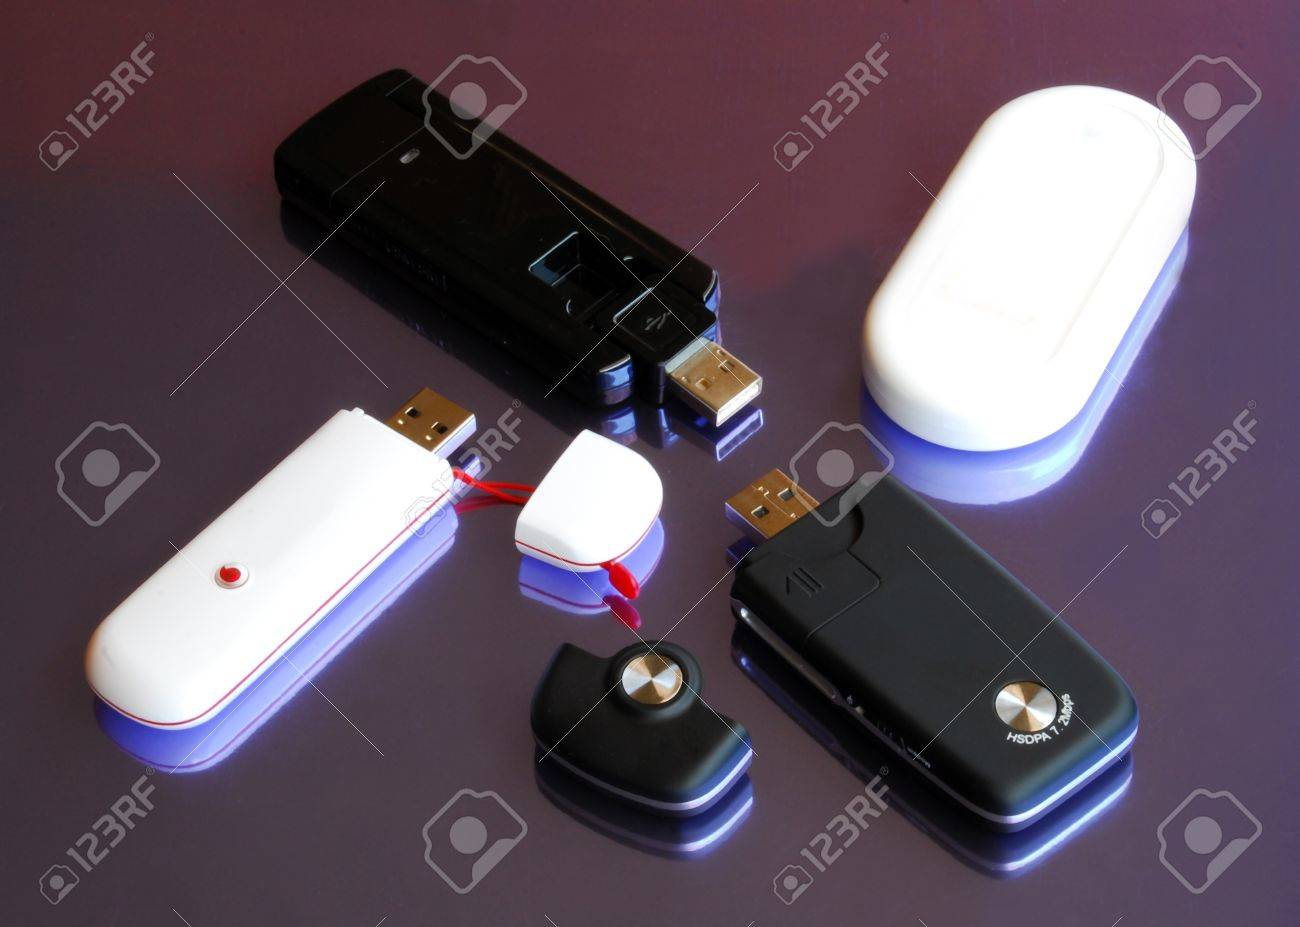 USB Modem is a product that connects to the broadband internet